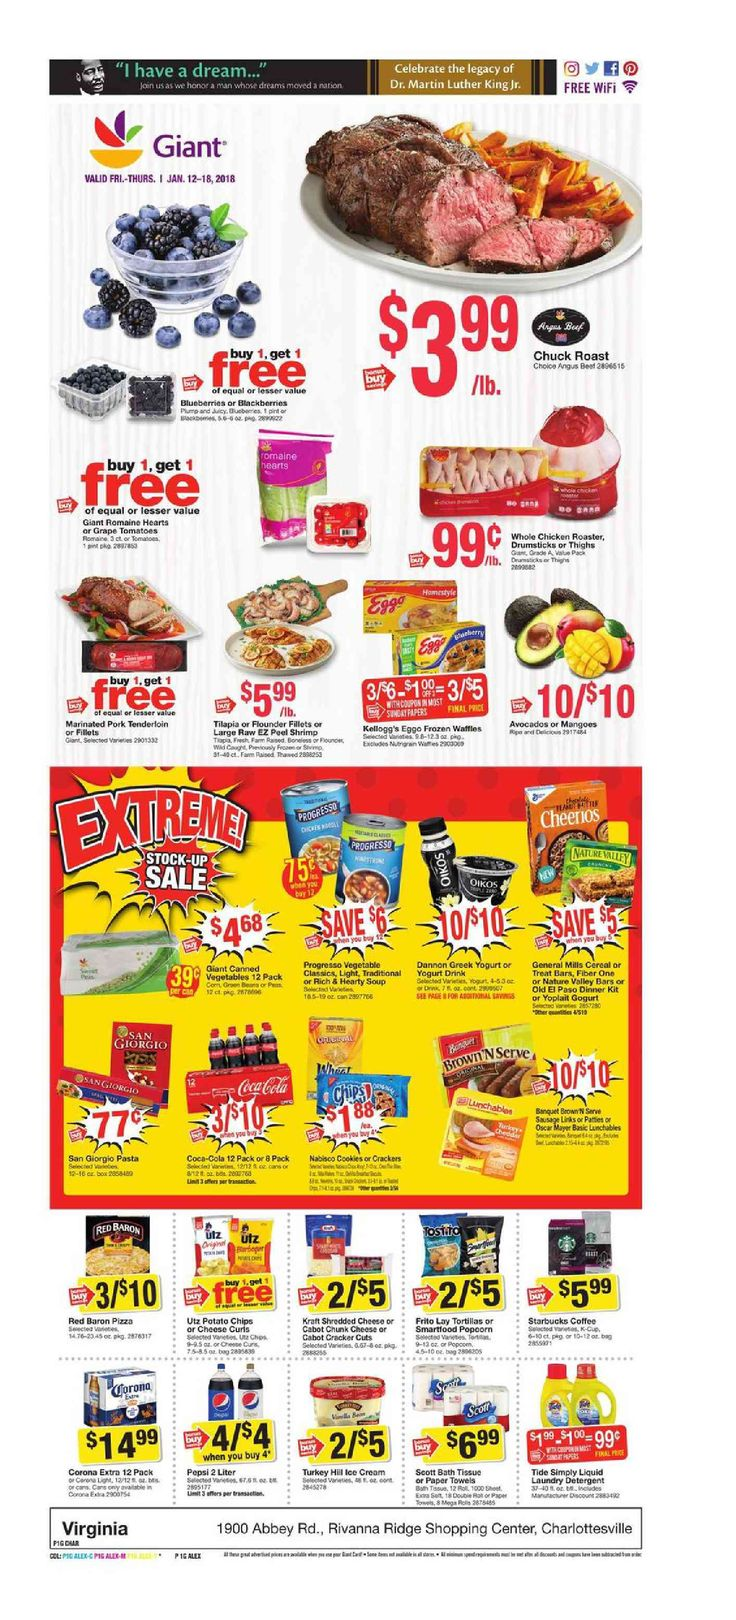 Giant Food Weekly Ad January 12 – 18, 2018 – Giant Food, Grocery weekly ad comes on the scene almost per week but sometimes people see the Giant Food, Grocery ad plus they are quick to throw it out. Checking the ads every week and clipping the coupons that may inside weekly circulars can actually be an exceptionally rewarding experience. Giant Food, Grocery regularly includes coupons which will equate his much as 50% off your purchase. Therefore you could try out